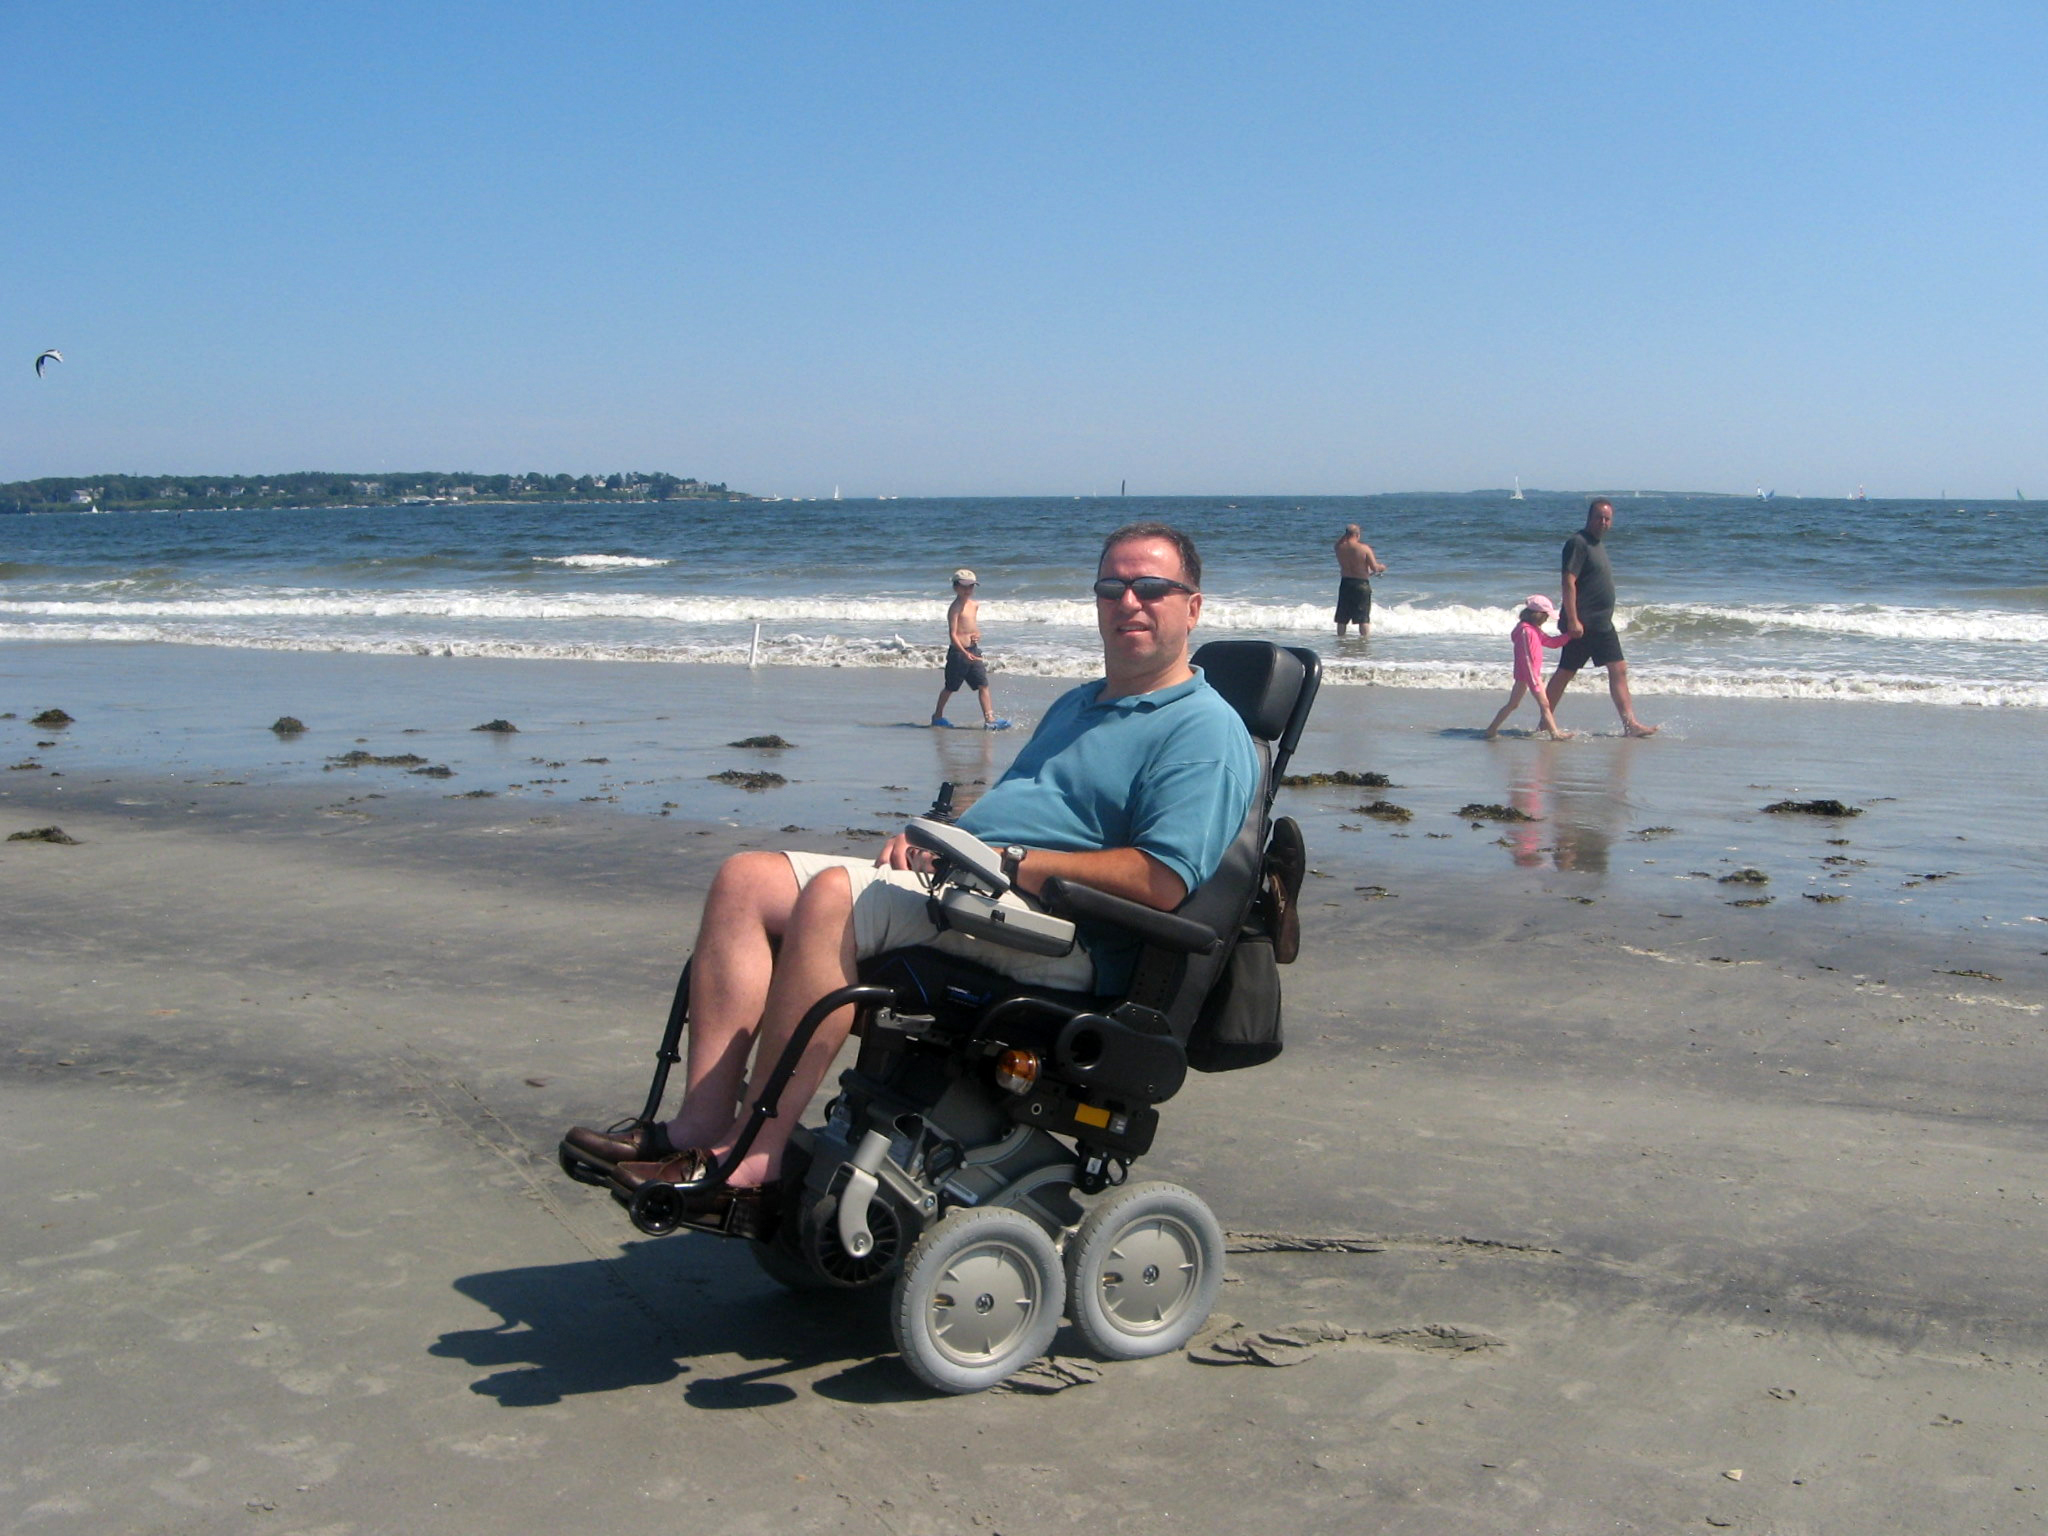 Mitch on a beach in his iBot wheelchair